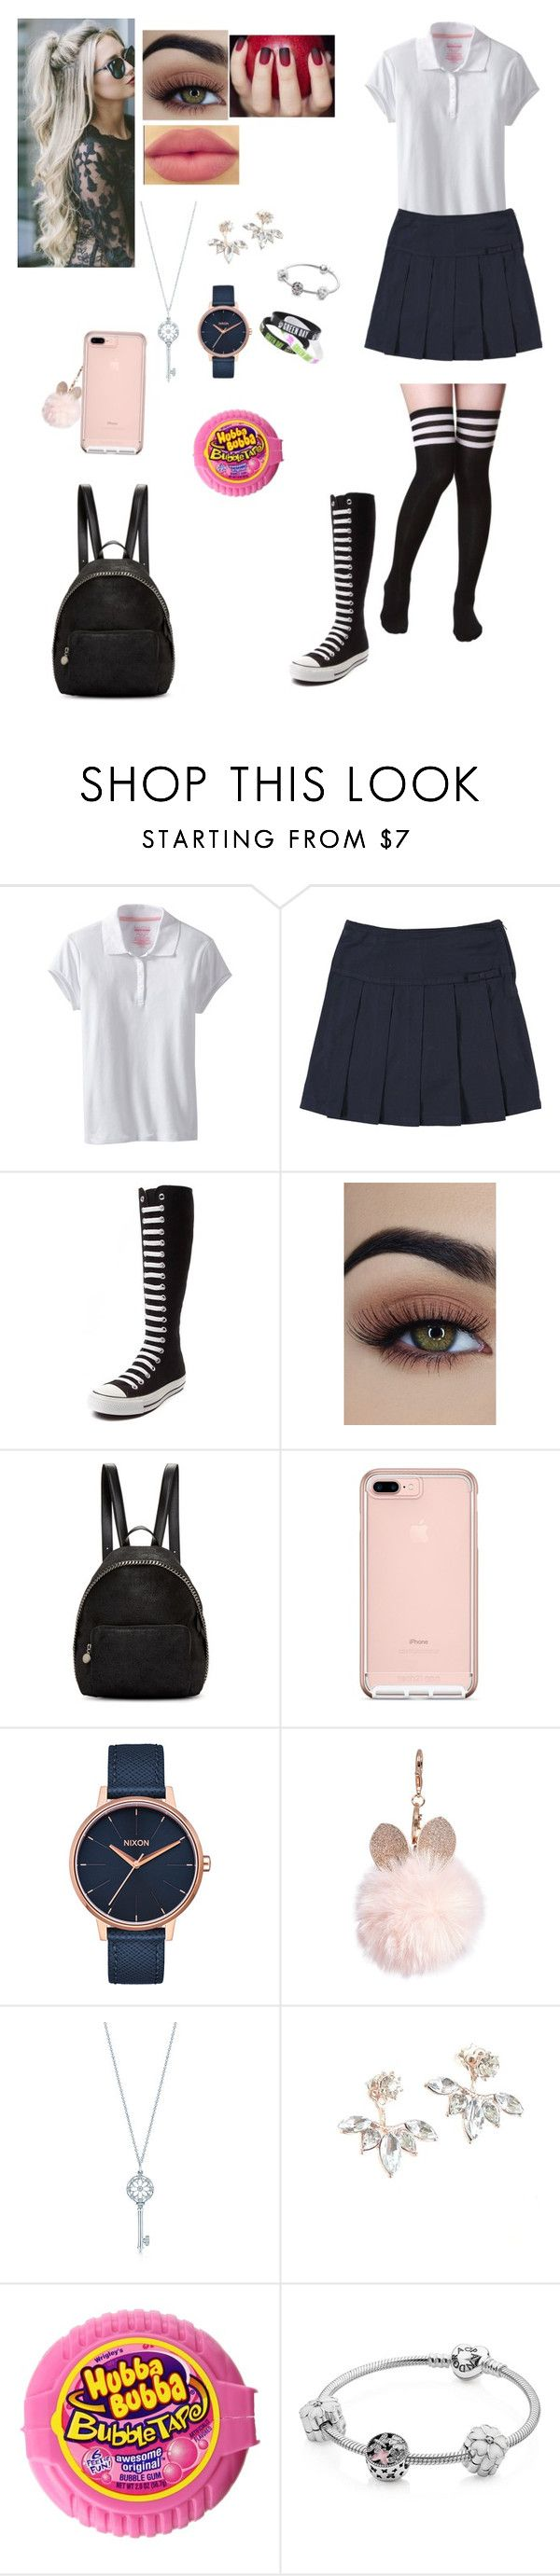 """School 🙈"" by unicornchaby ❤ liked on Polyvore featuring Nautica, French Toast, Converse, tarte, STELLA McCARTNEY, Nixon, GUESS, Tiffany & Co. and Pandora"